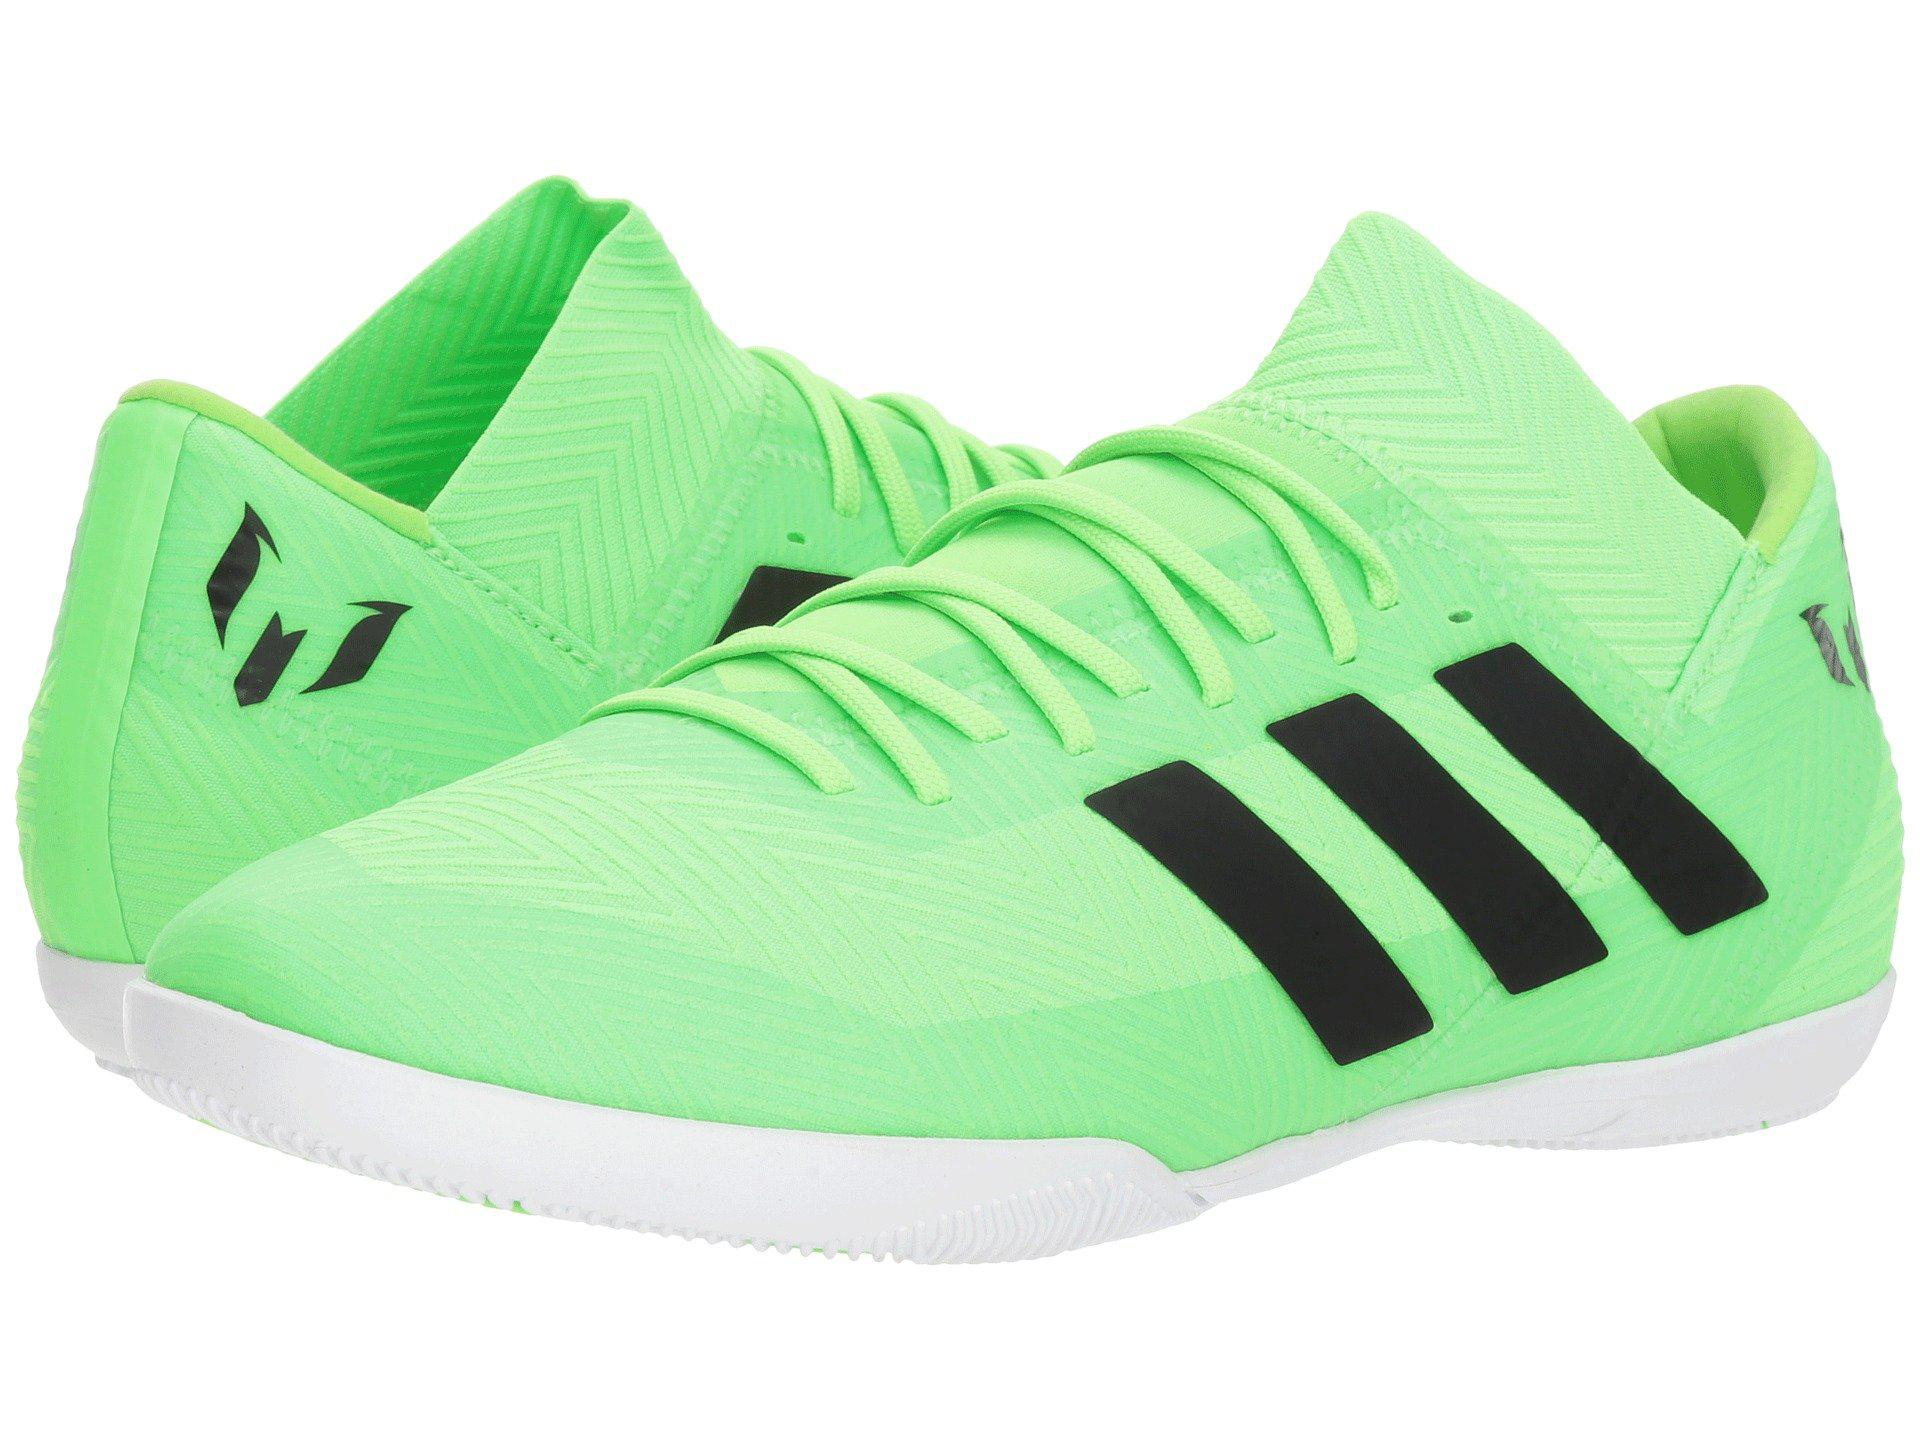 13ea3480ab7 adidas Nemeziz Messi Tango 18.3 In World Cup Pack in Green for Men ...